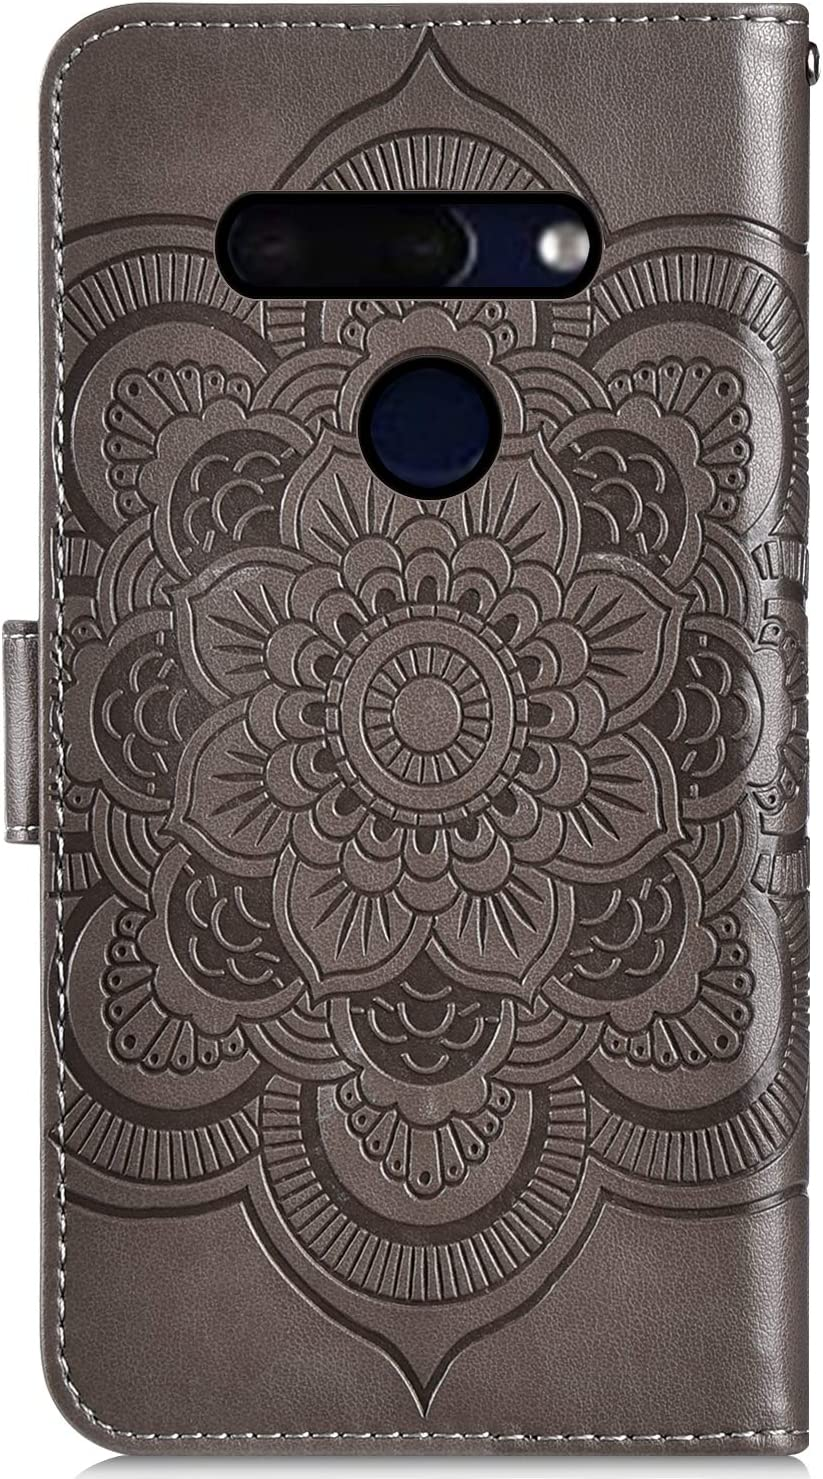 IKASEFU Compatible with LG G8 ThinQ Case Shiny Sun mandala Floral Rhinestone Pu Leather Diamond Bling Wallet Strap Case with Card Holder shockproof Magnetic Flip Bumper Cover,Blue